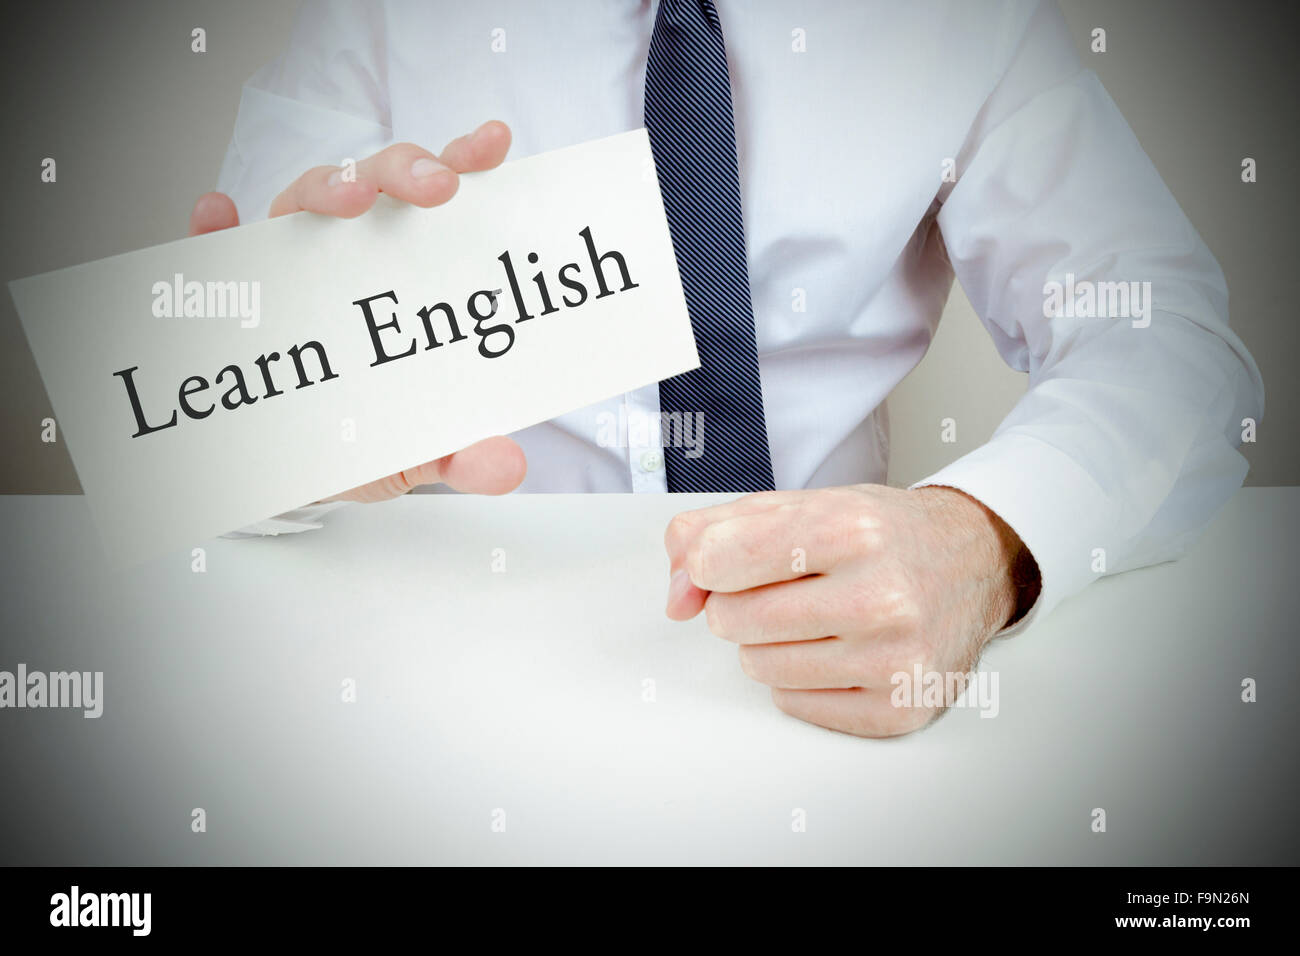 A man dressed in shirt and tie holding up a card to learn English - Stock Image